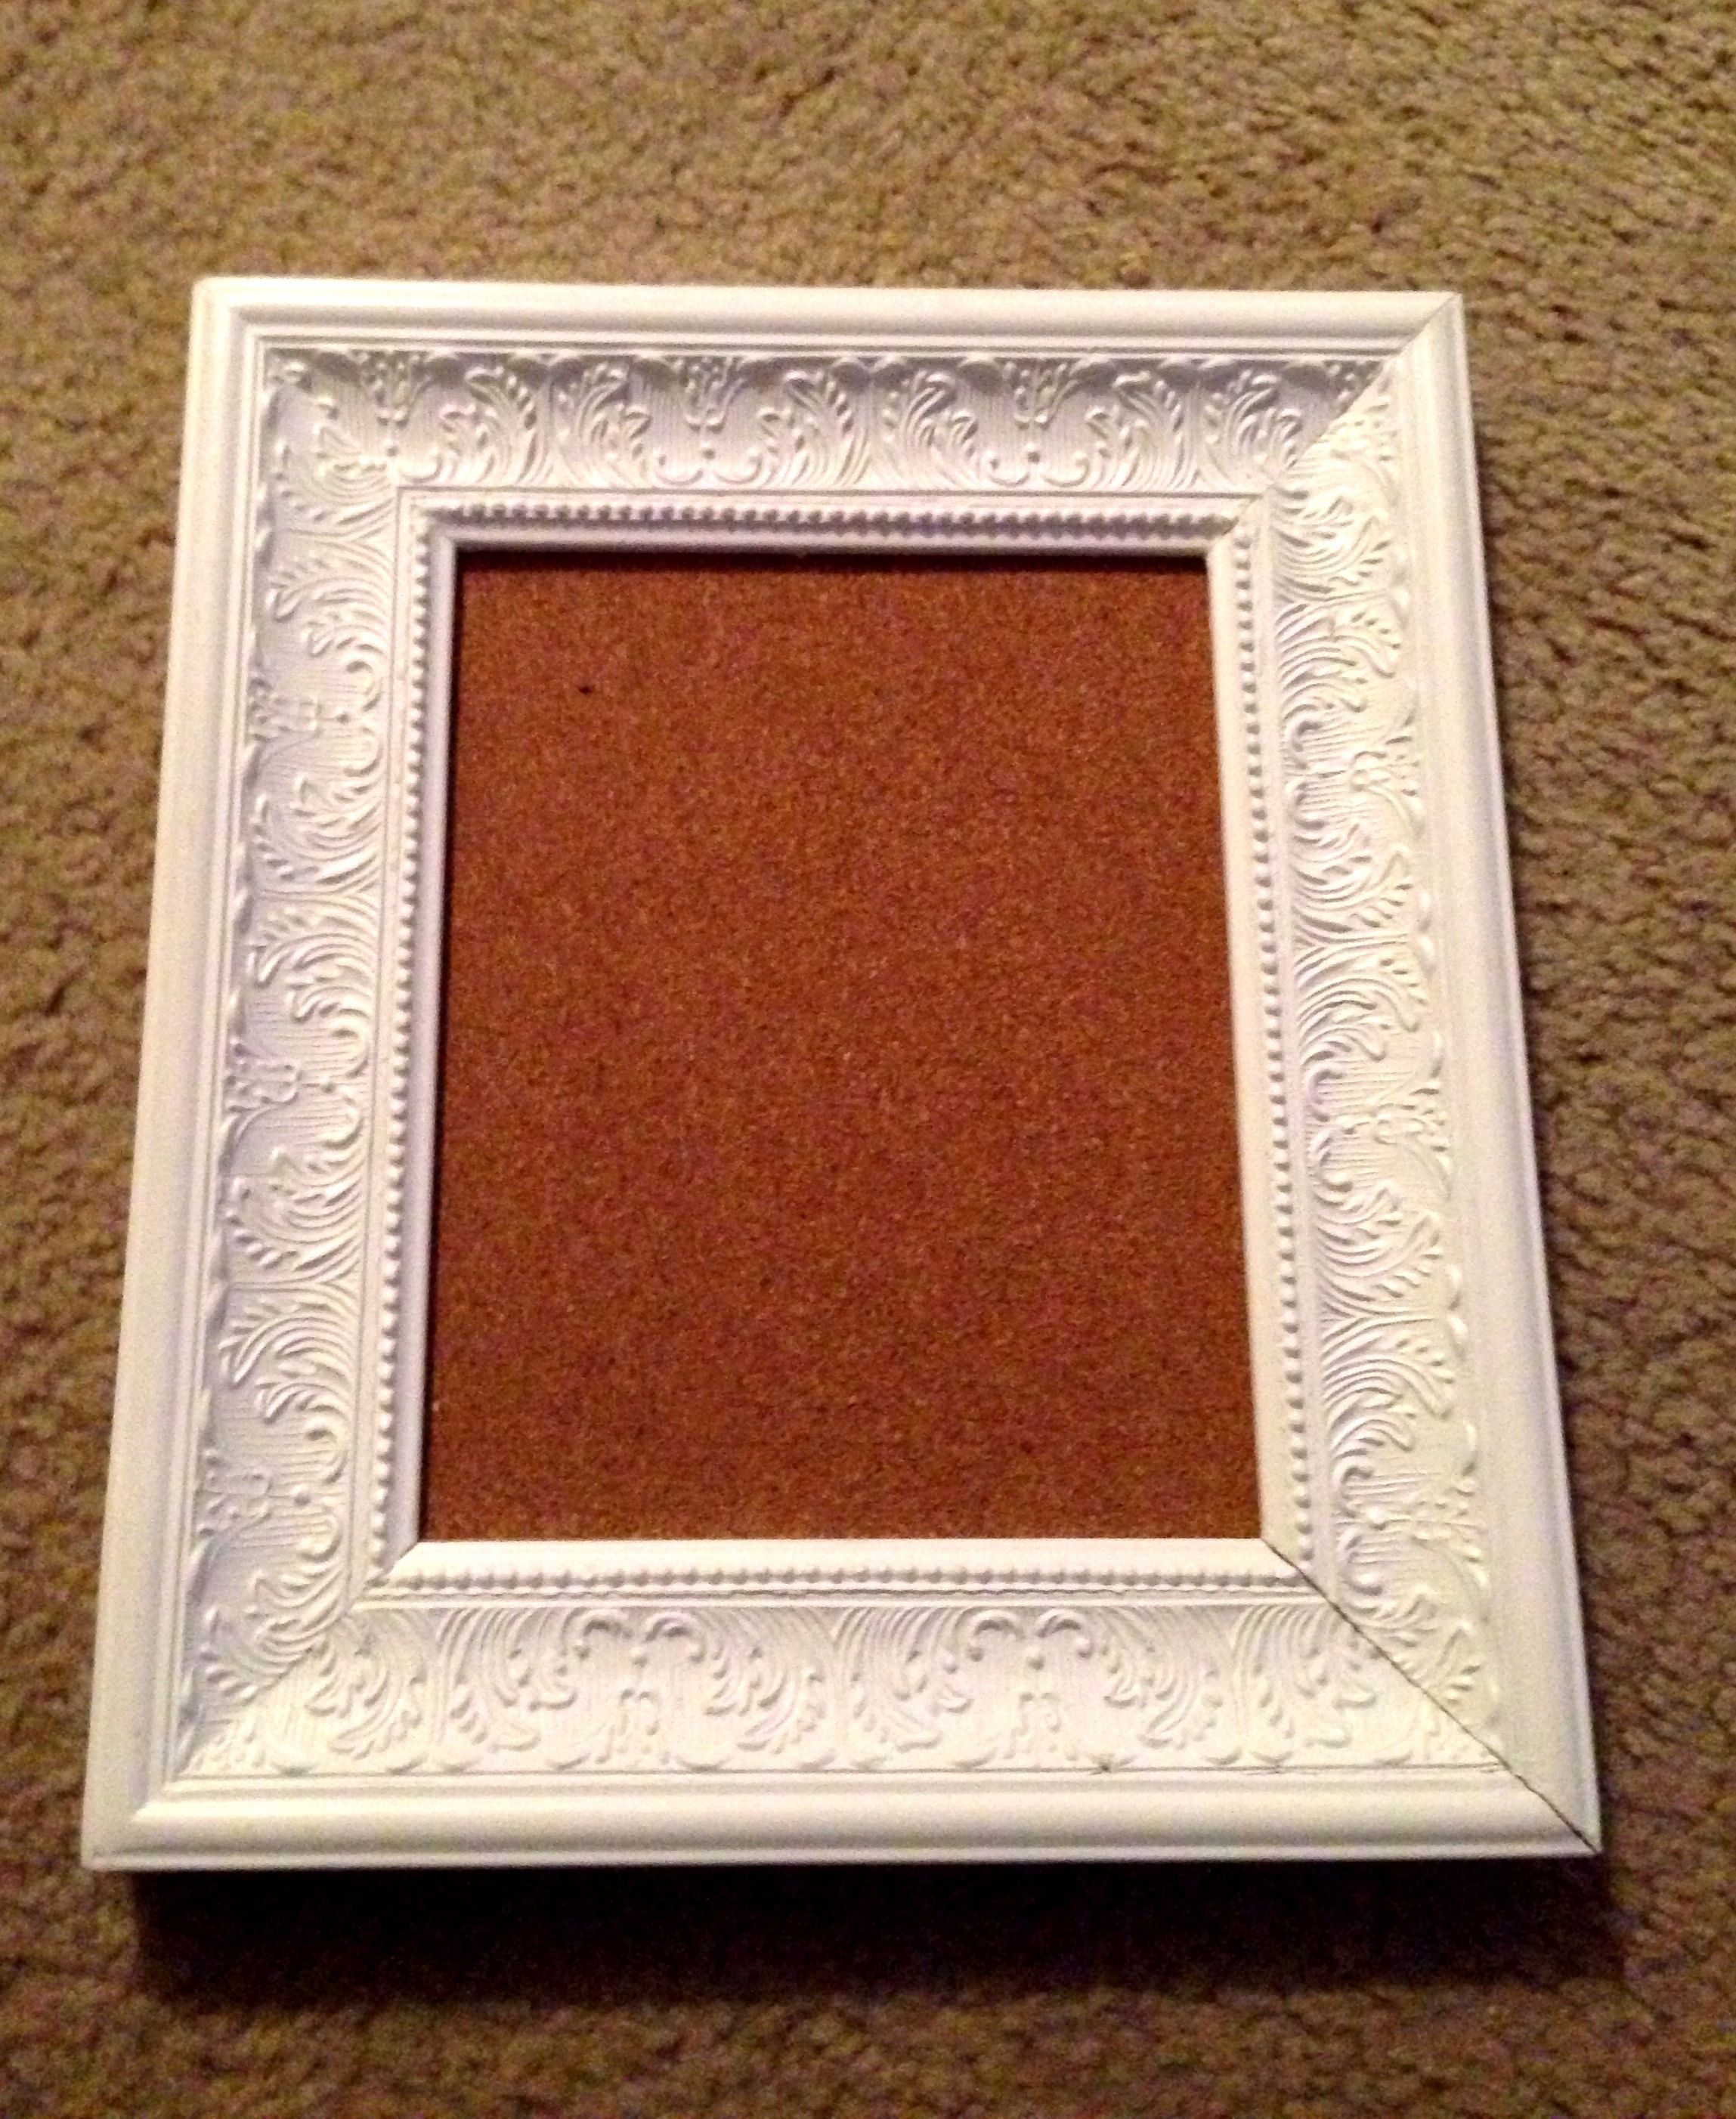 Diy Framed Cork Board Frame And Cork Purchased At Hobby